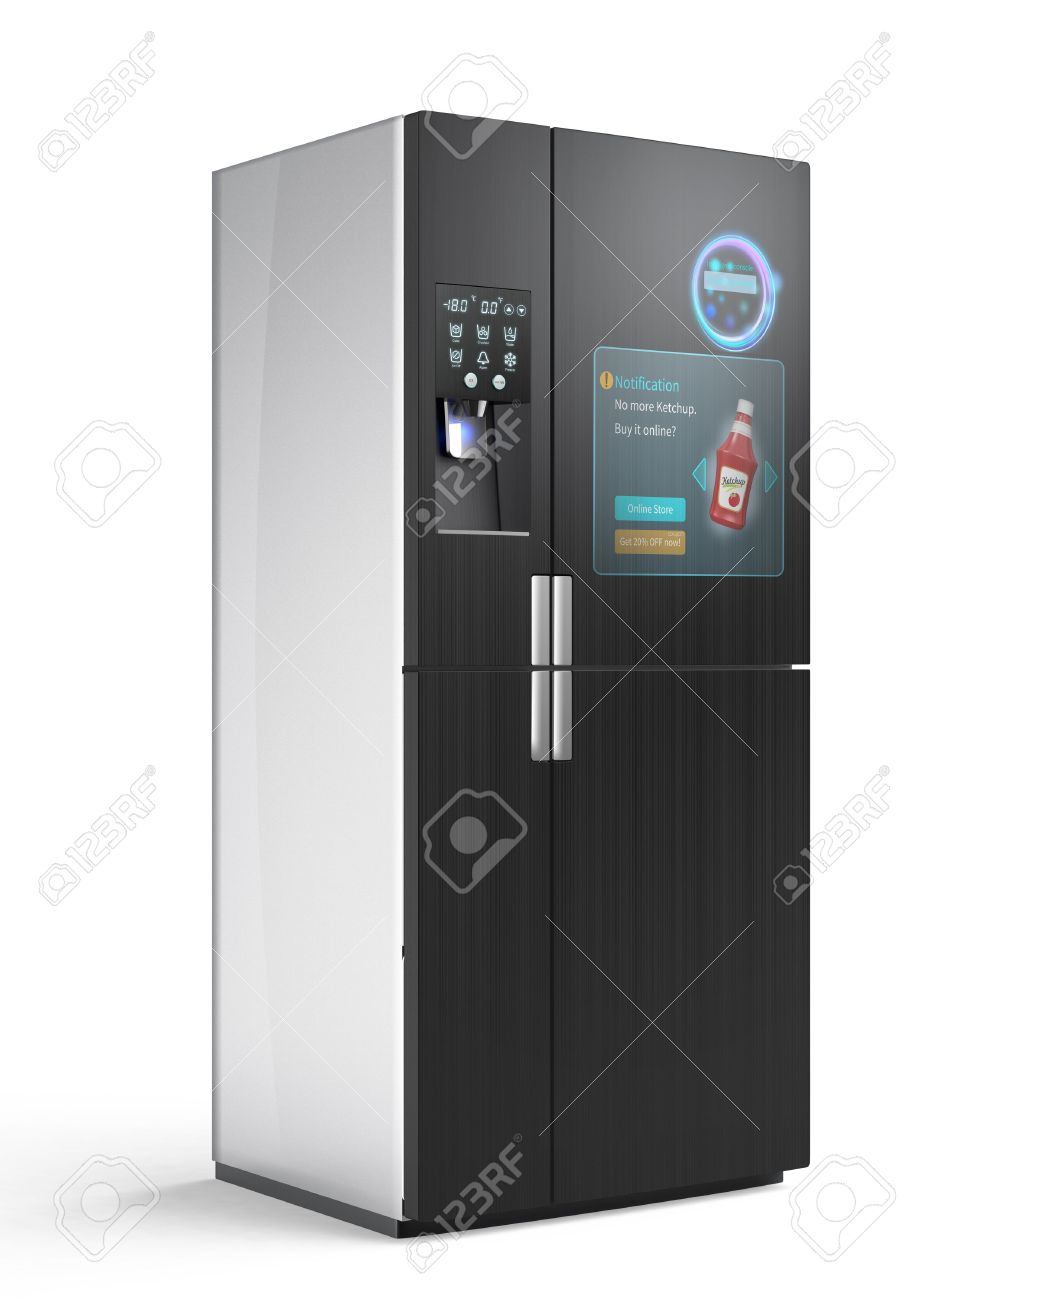 Smart Kühlschrank Stock Photo